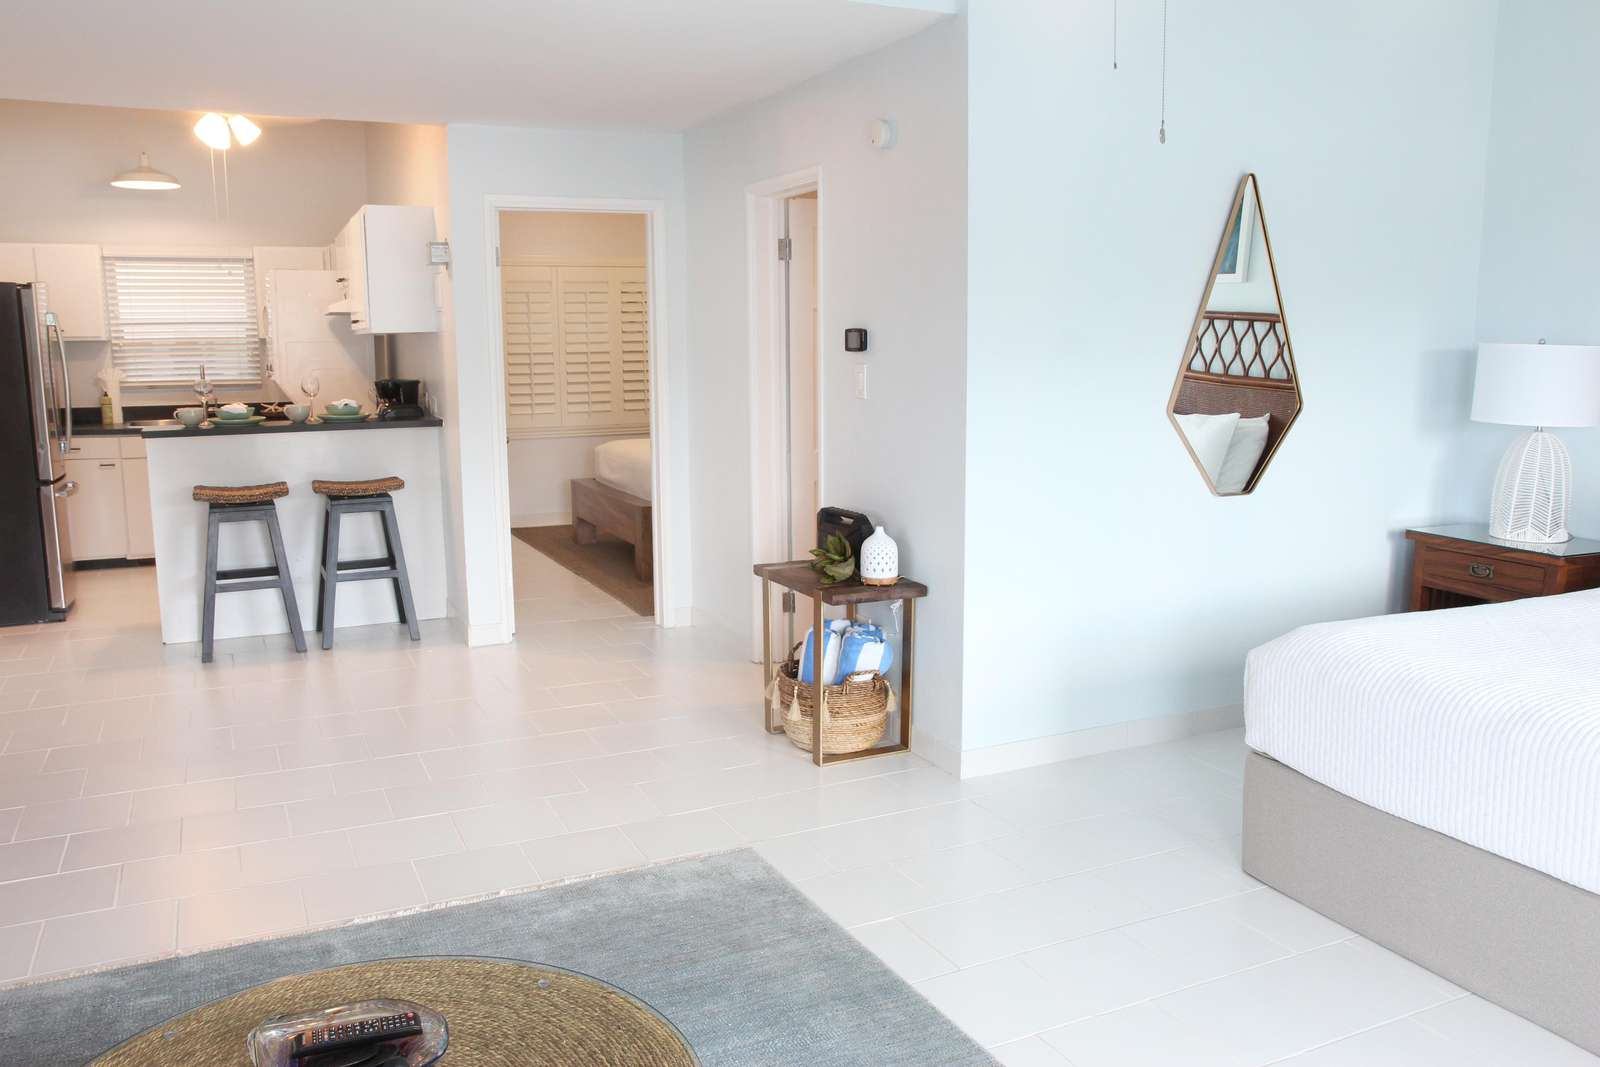 Kitchenette in the Pool Level Casita Apartment along with a private bedroom and shared bath